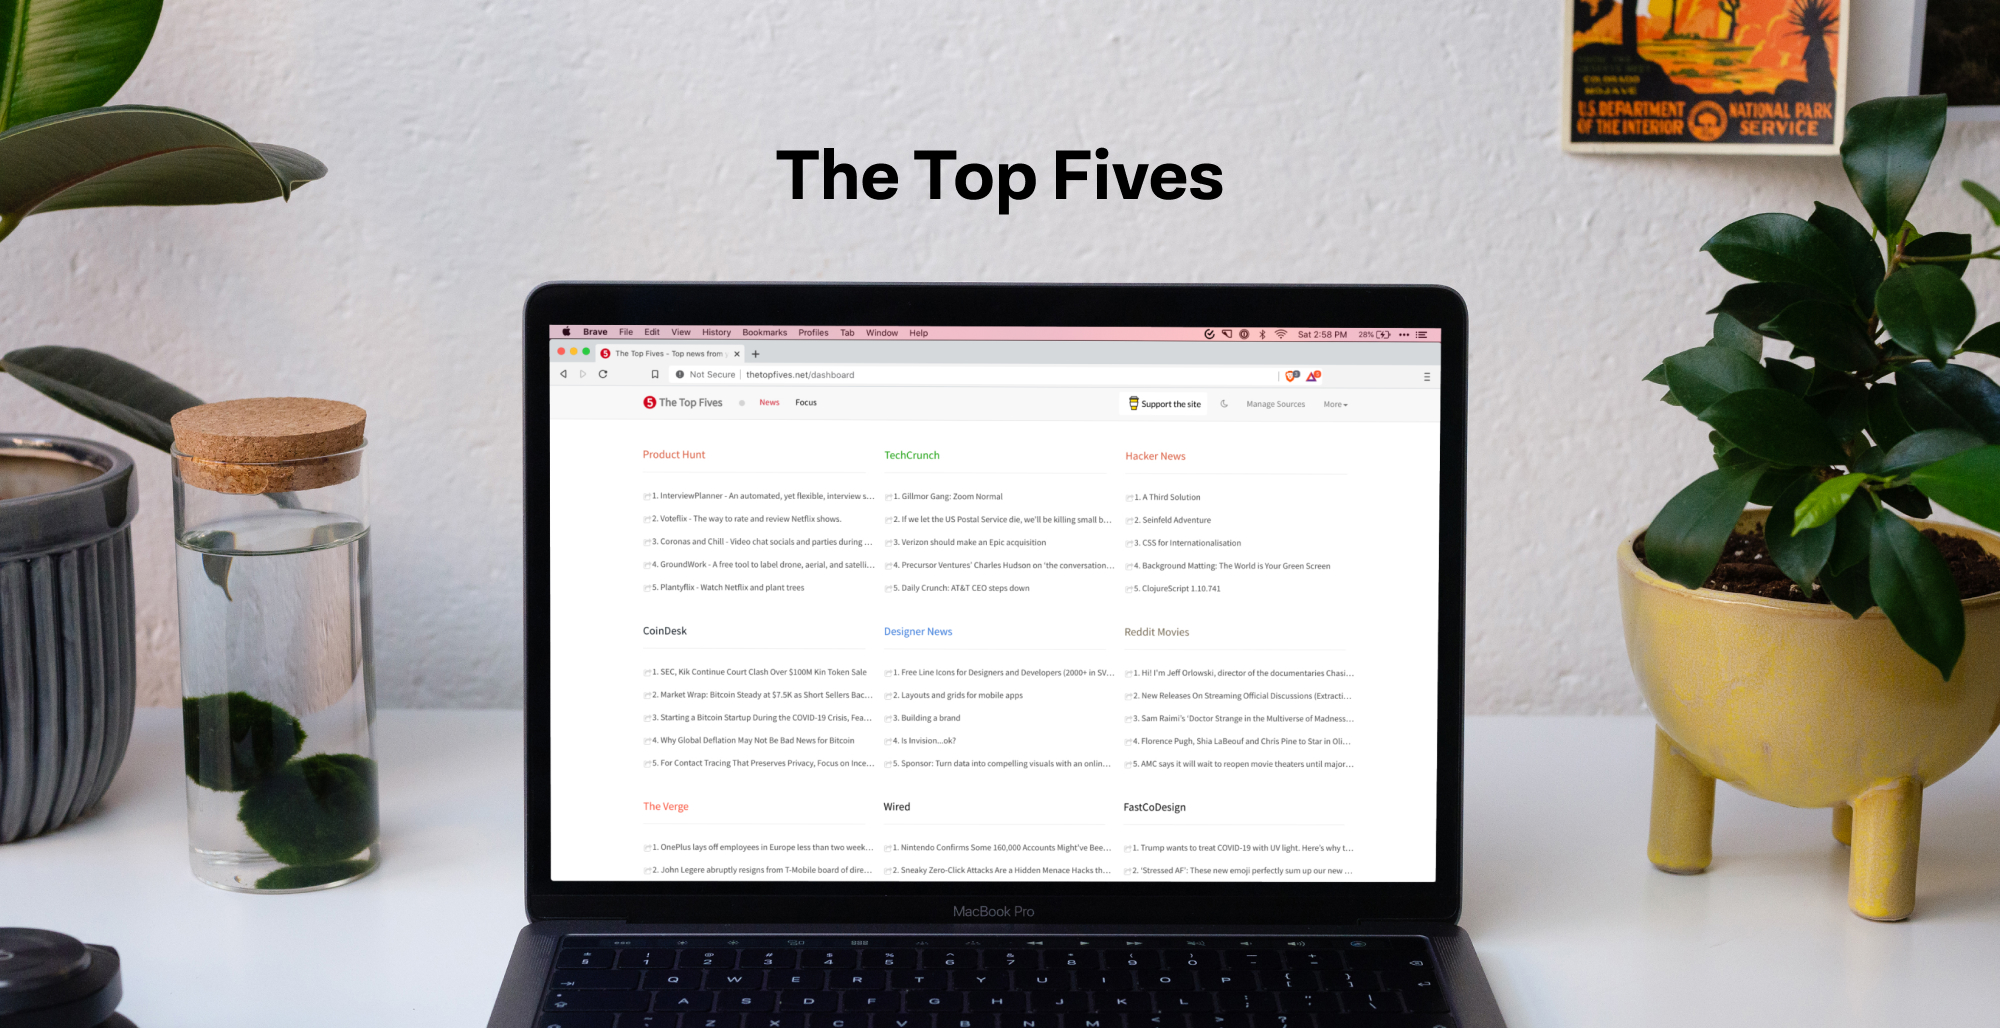 The Top Fives - Get the top news on products, design and technology from the some of the best sources